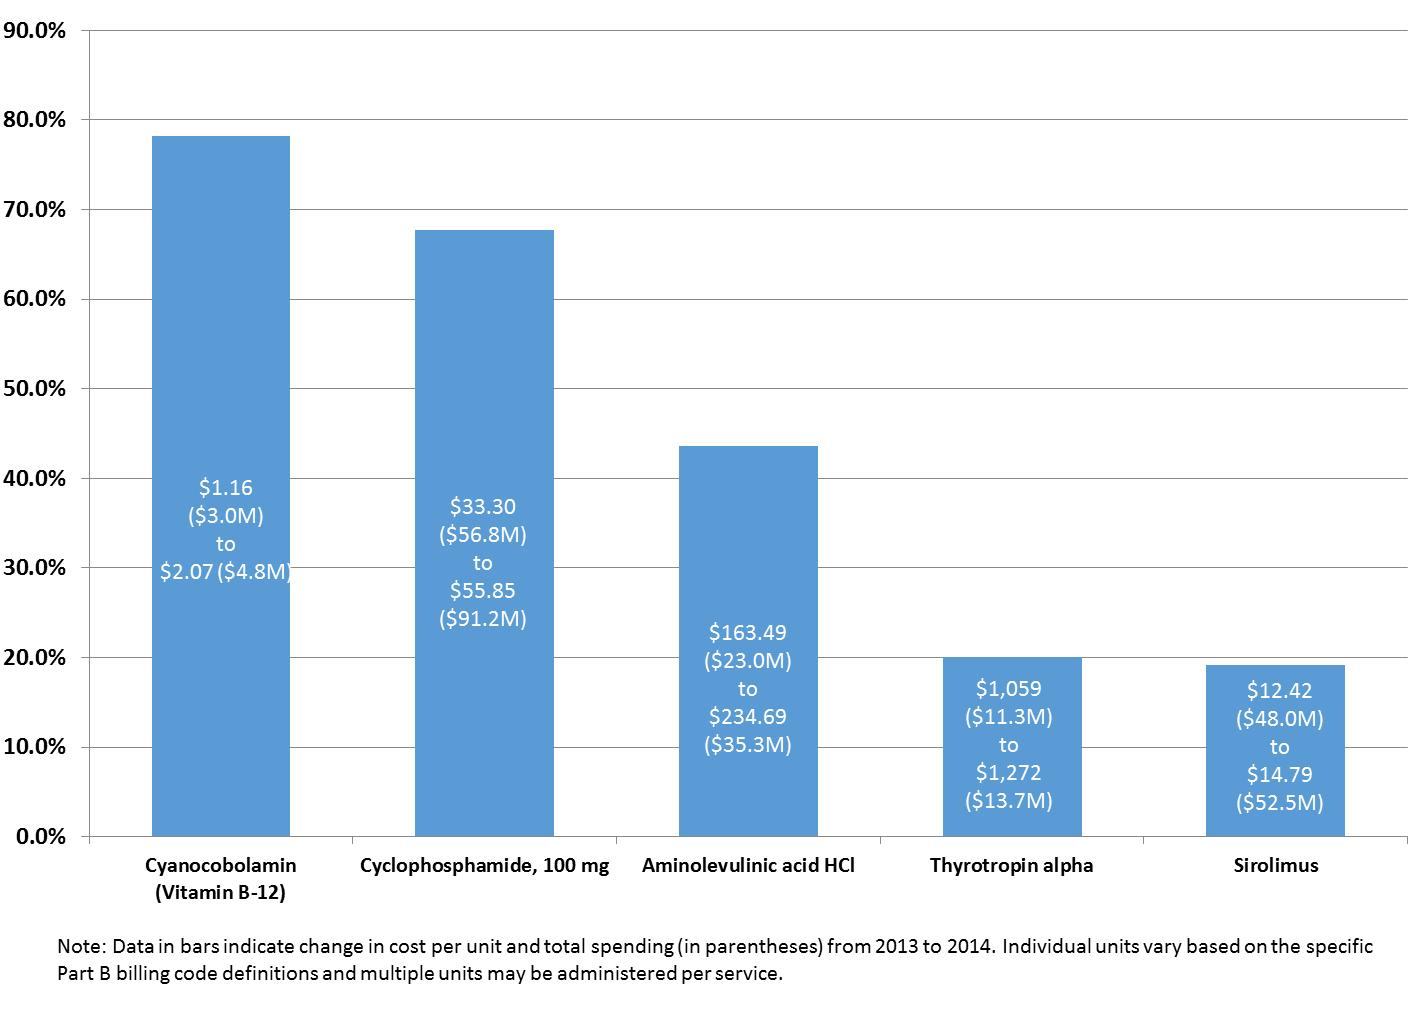 Medicare Part B Drugs with Large Increases in Spending per Unit, 2013 to 2014